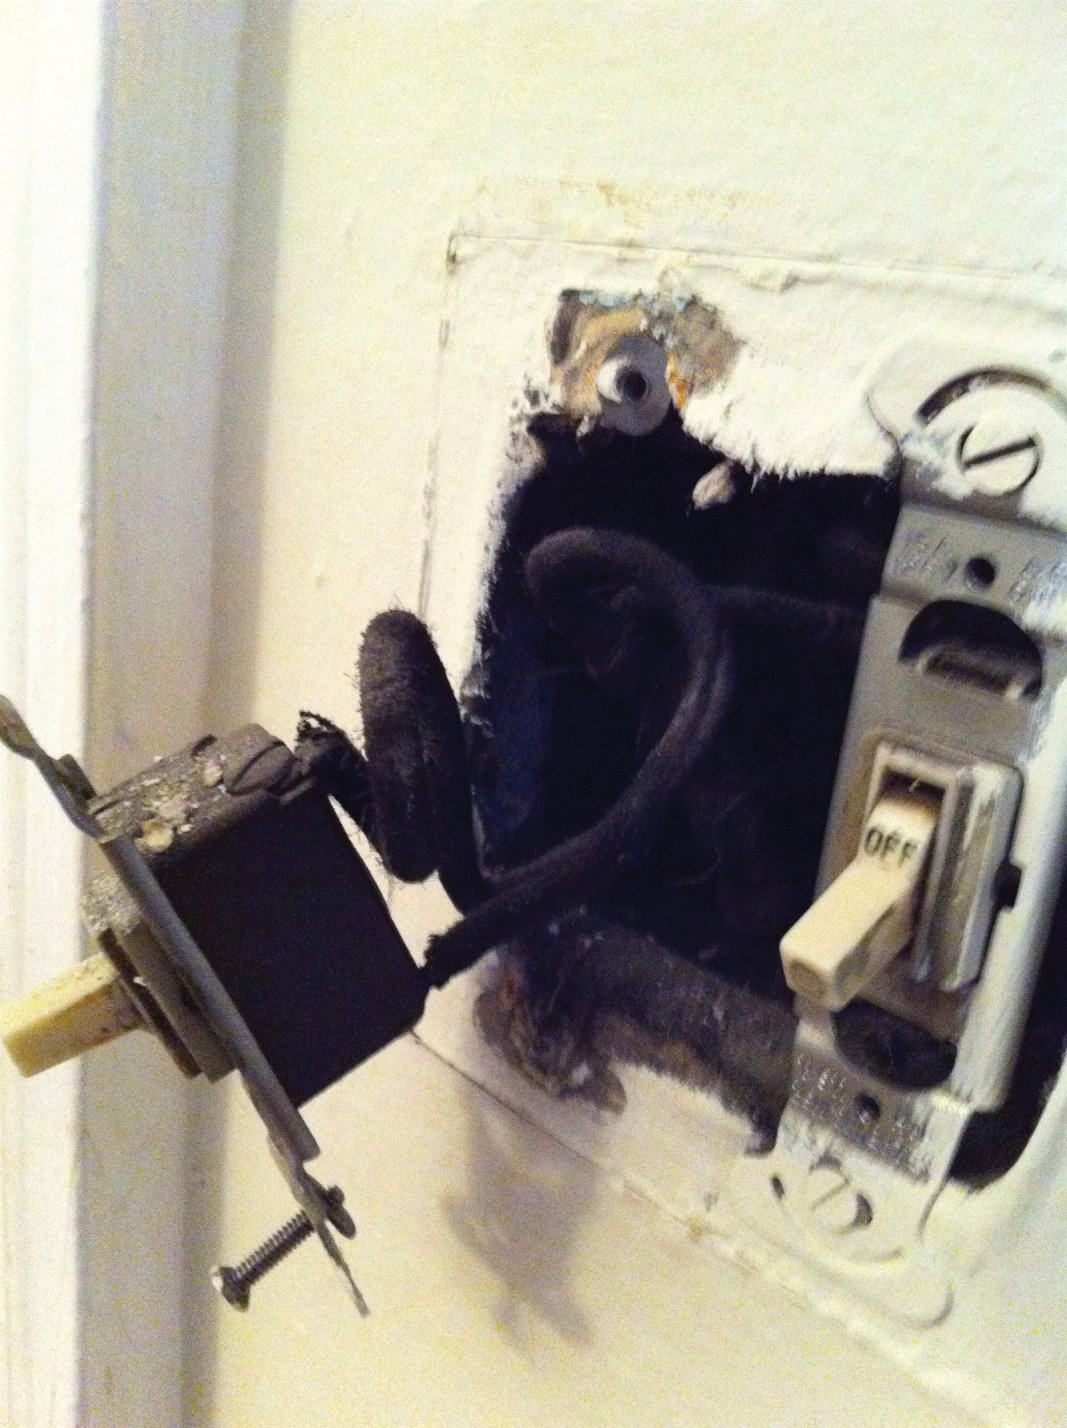 Vintage cloth-covered wire replaced by Hyde Park Electrician!